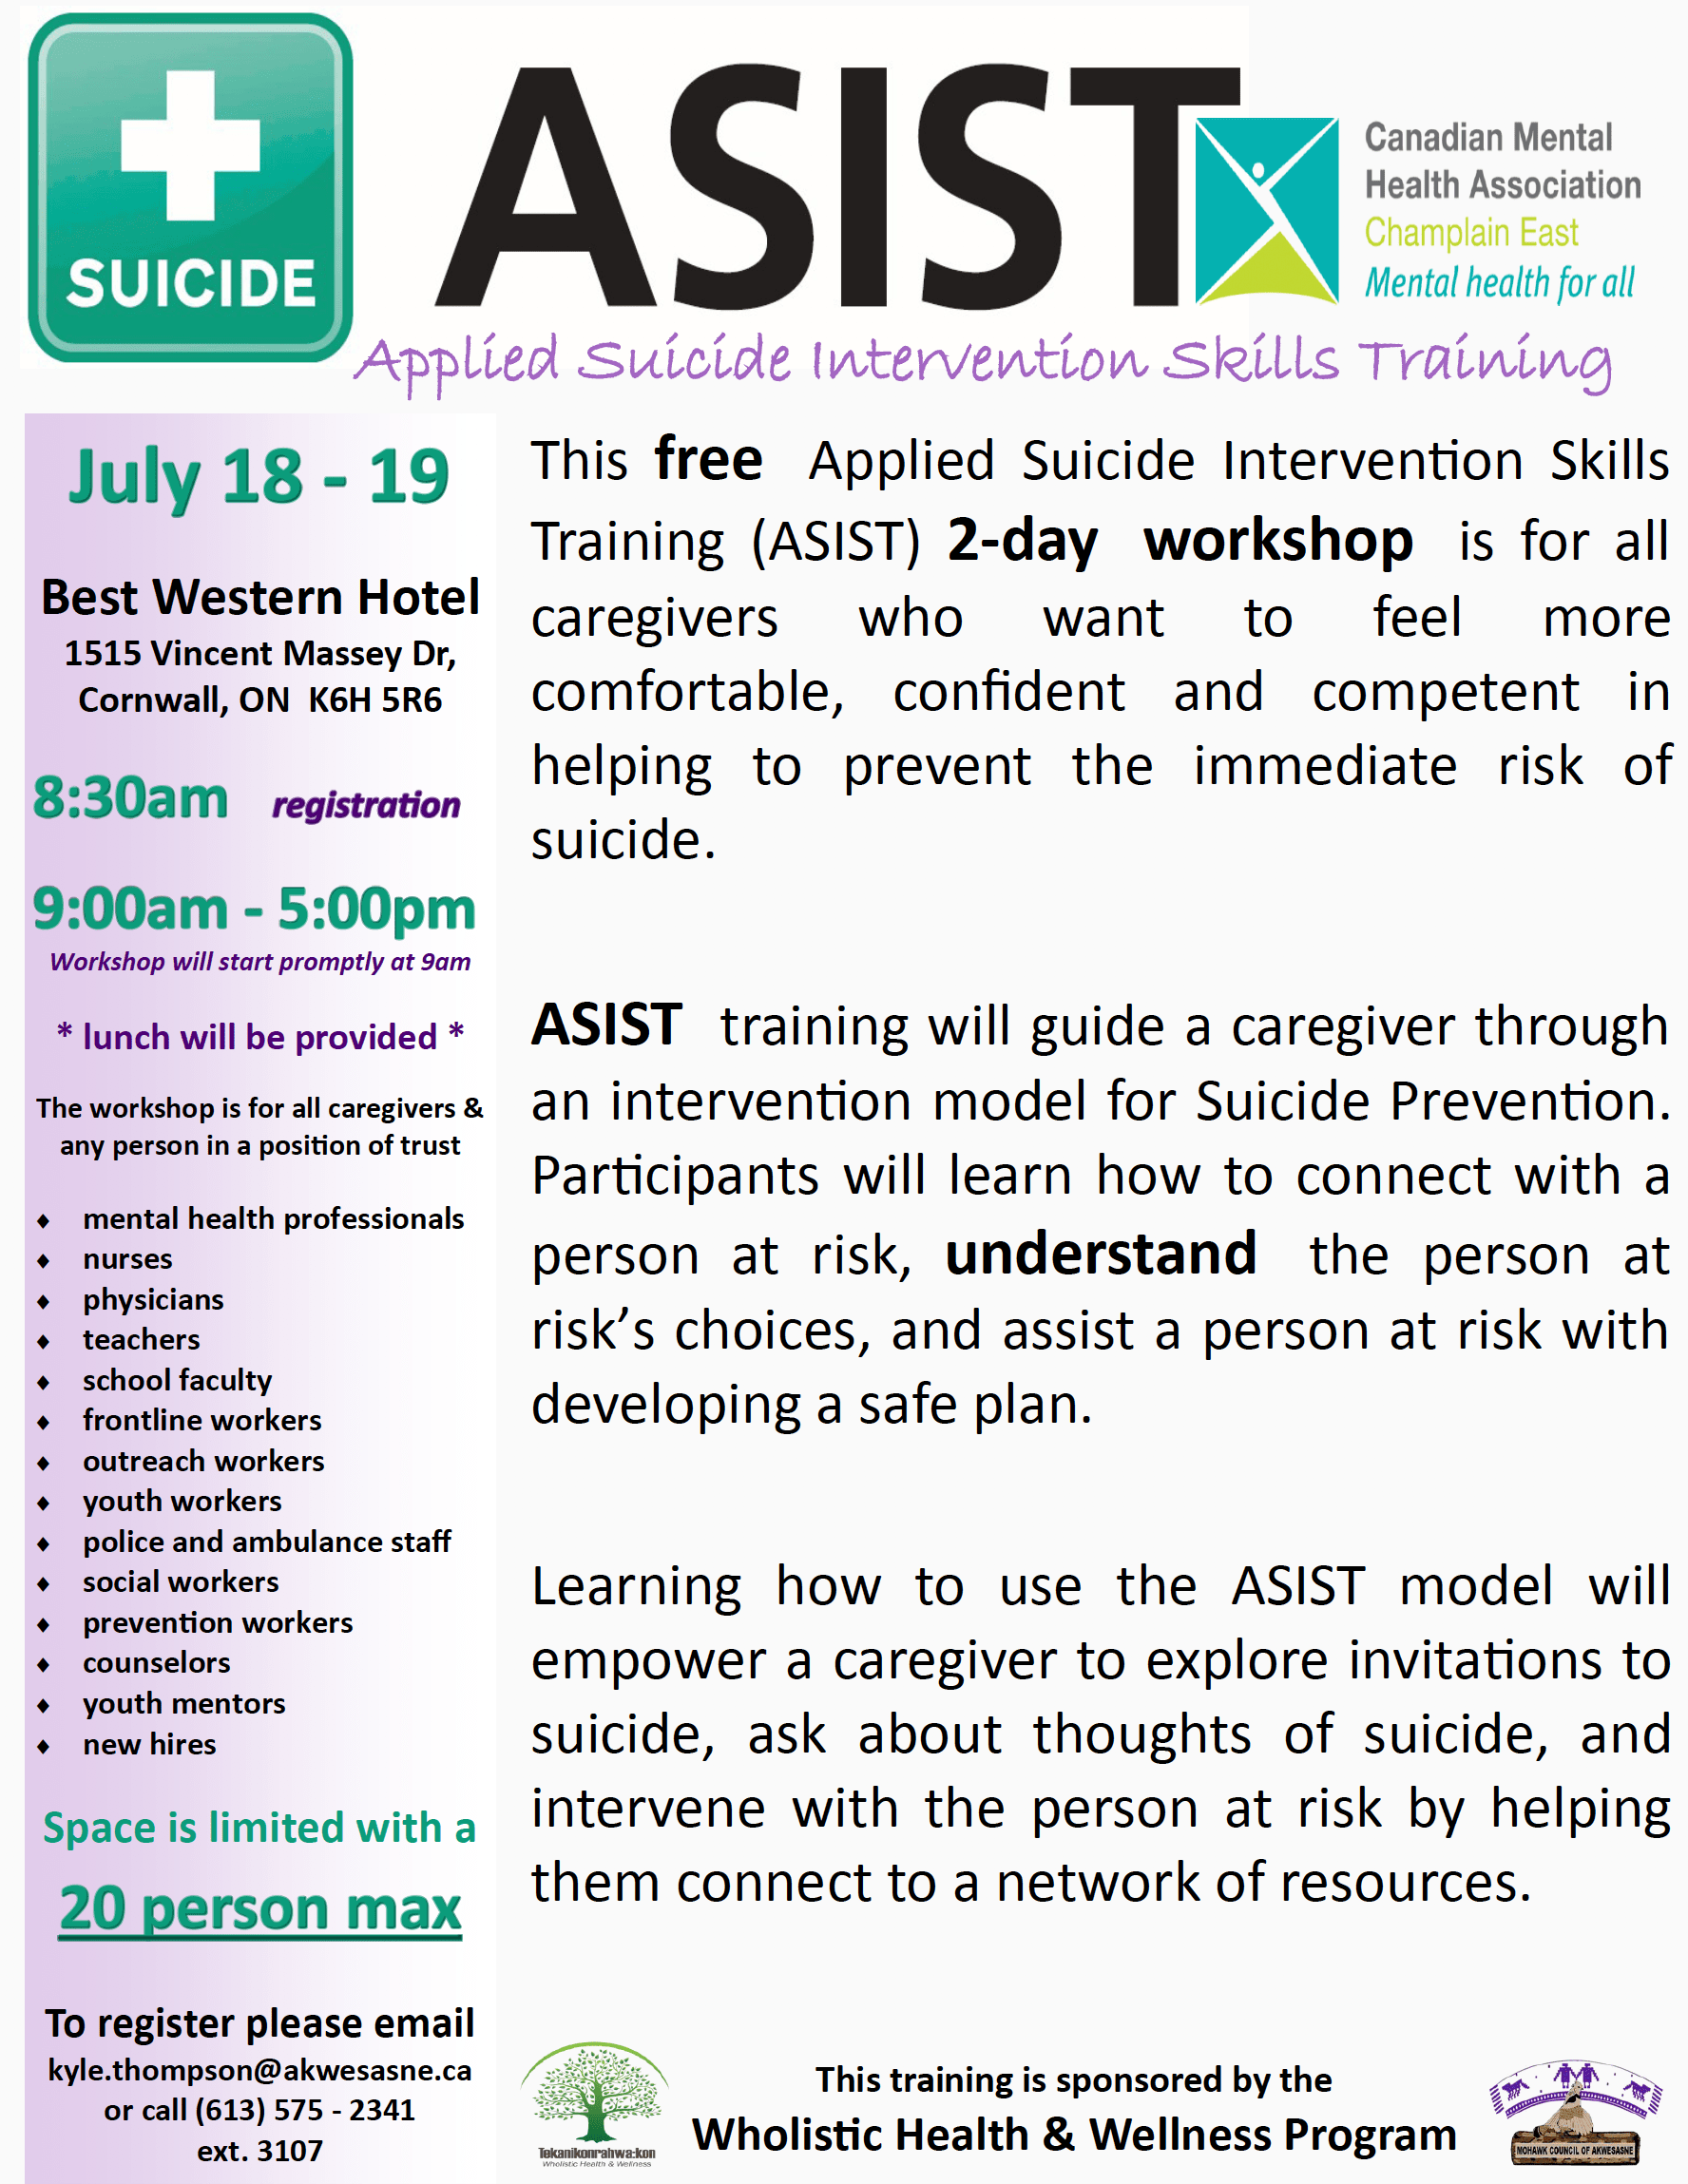 APPLIED SUICIDE INTERVENTION SKILLS TRAINING (ASIST) IN JULY